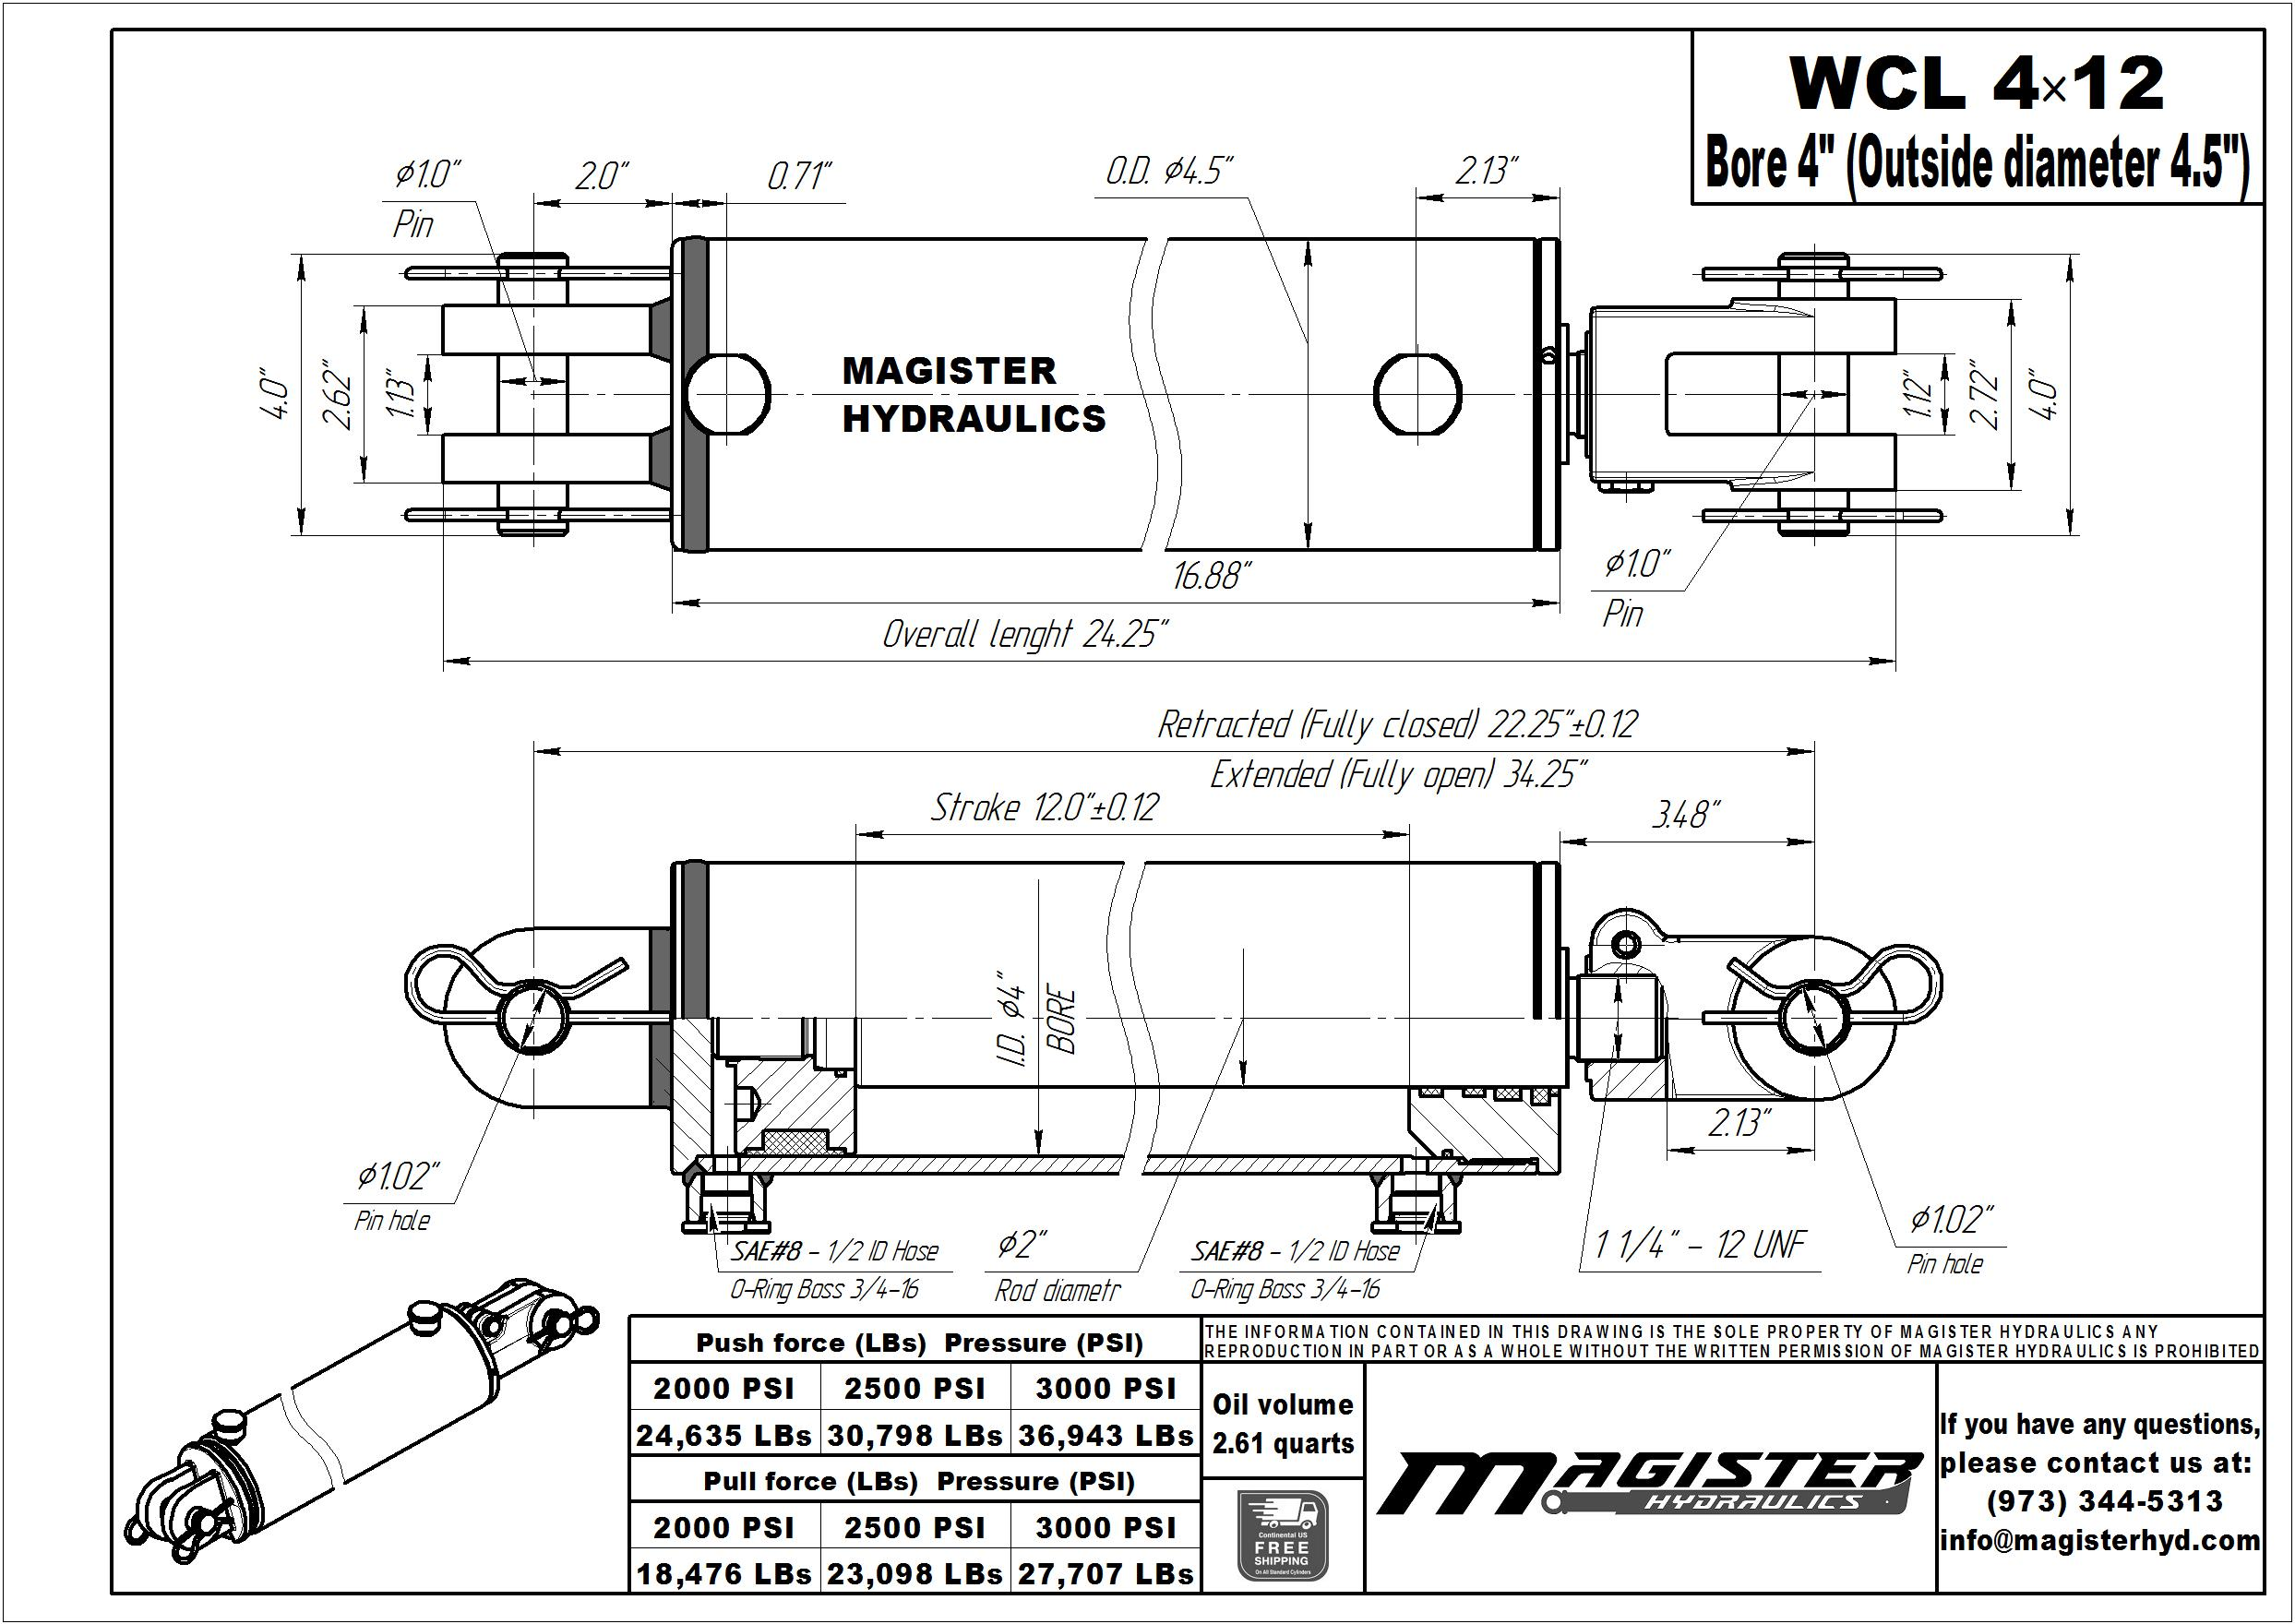 4 bore x 12 stroke hydraulic cylinder, welded clevis double acting cylinder | Magister Hydraulics